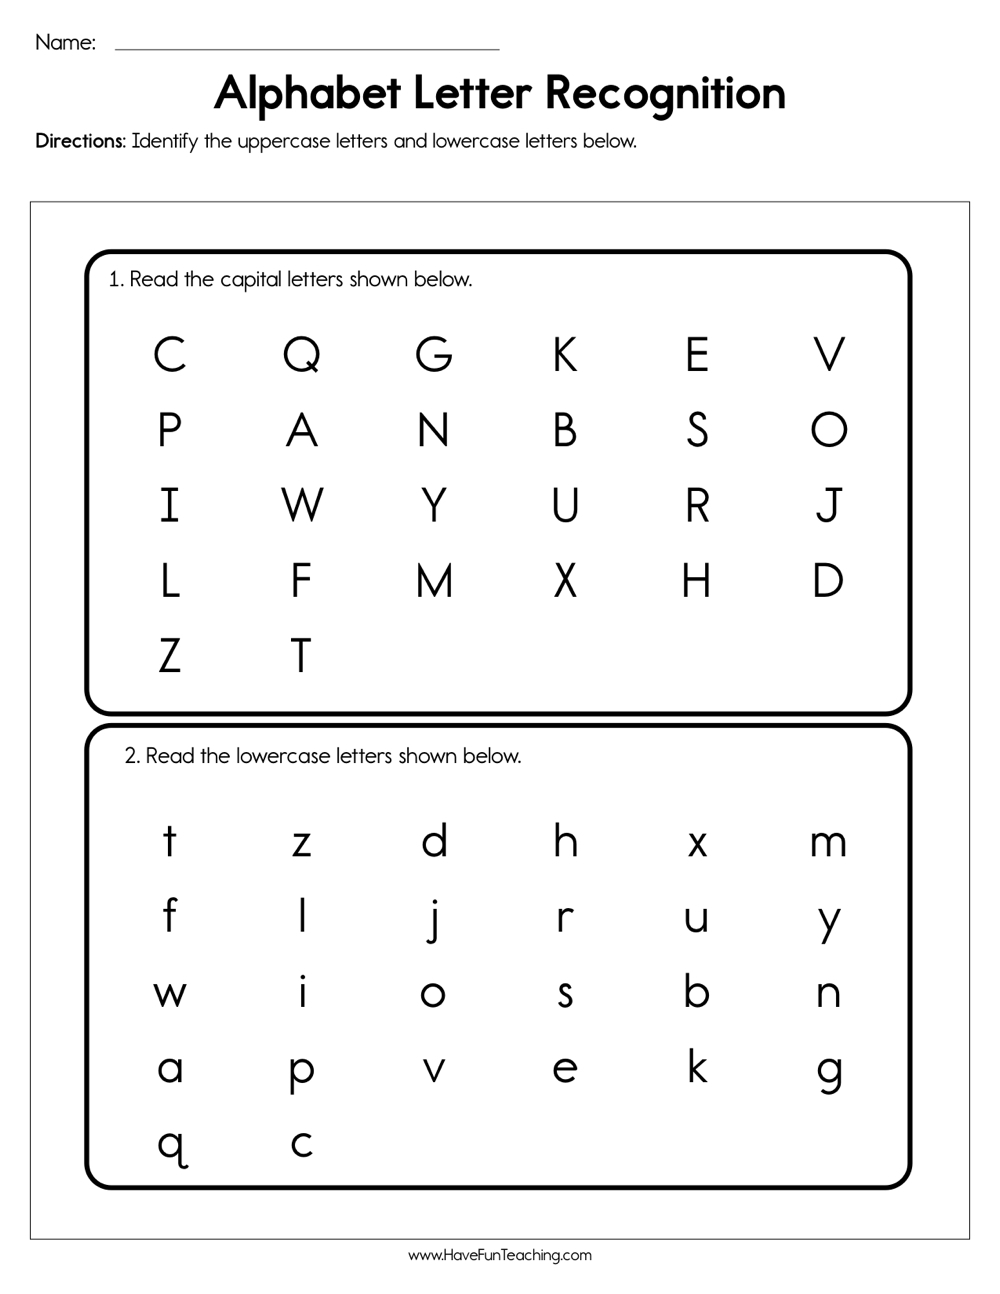 Alphabet Letter Recognition Assessment pertaining to Letter Id Worksheets